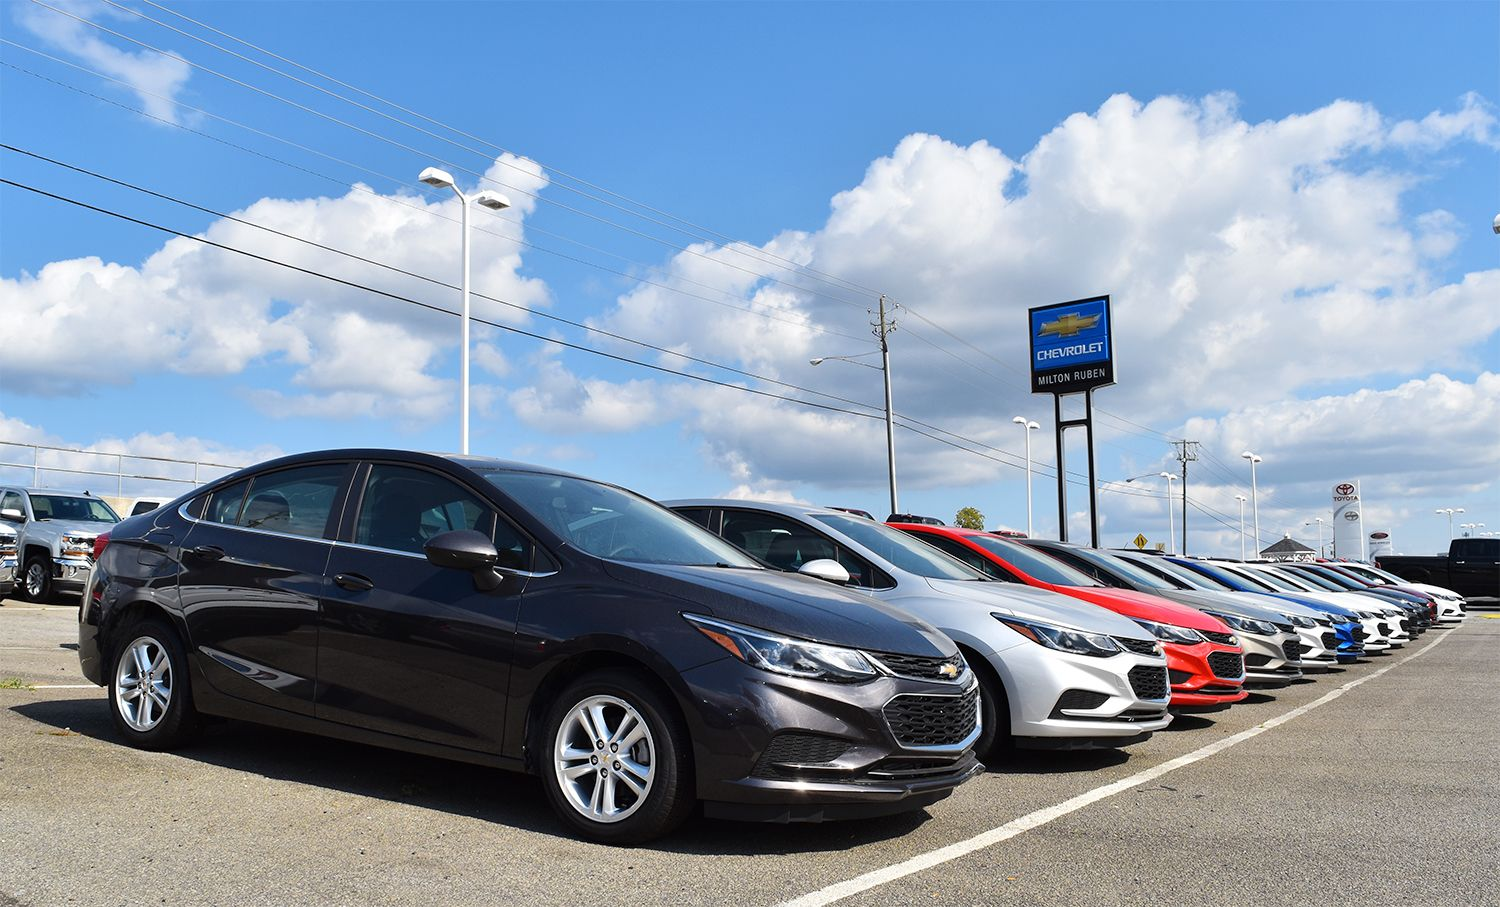 Every Side Is Its Good Side Introducing The 2017 Chevy Cruze On The Lot Now 2017 Chevy Cruze Chevy Cruze Cruze